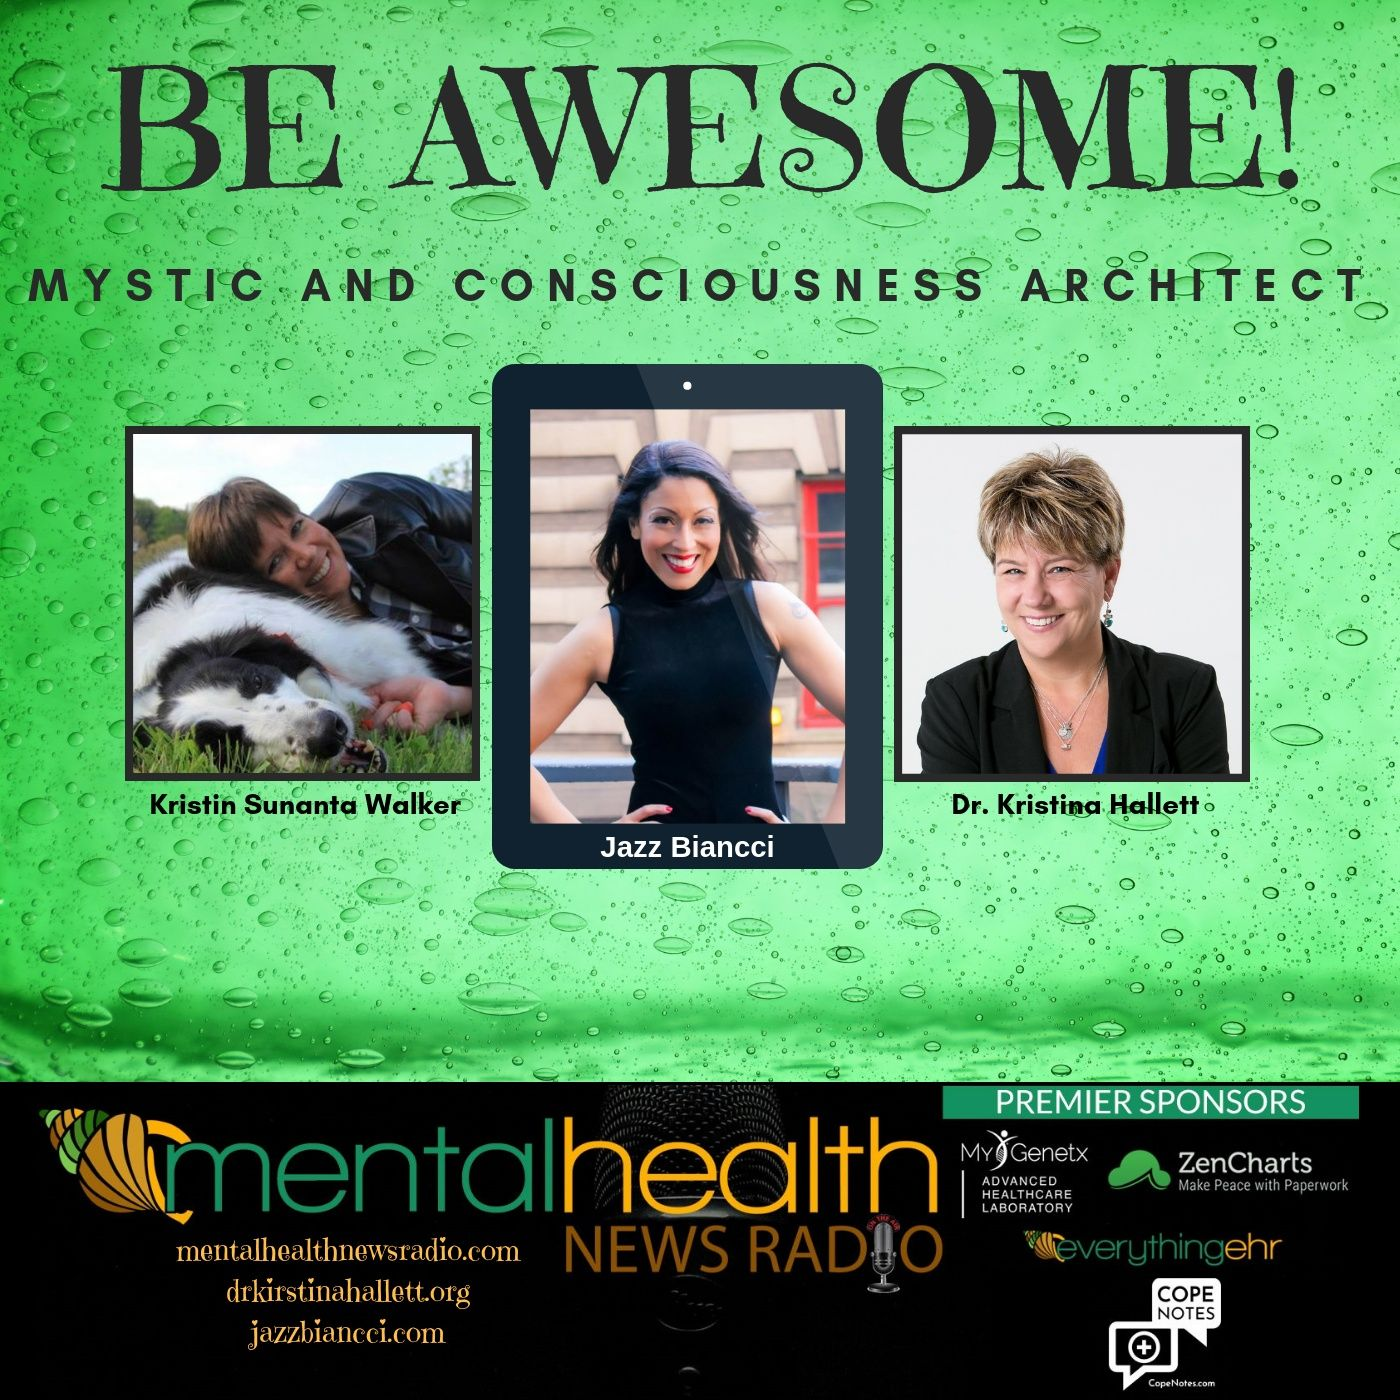 Mental Health News Radio - Be Awesome: Jazz Biancci - Mystic and Consciousness Architect